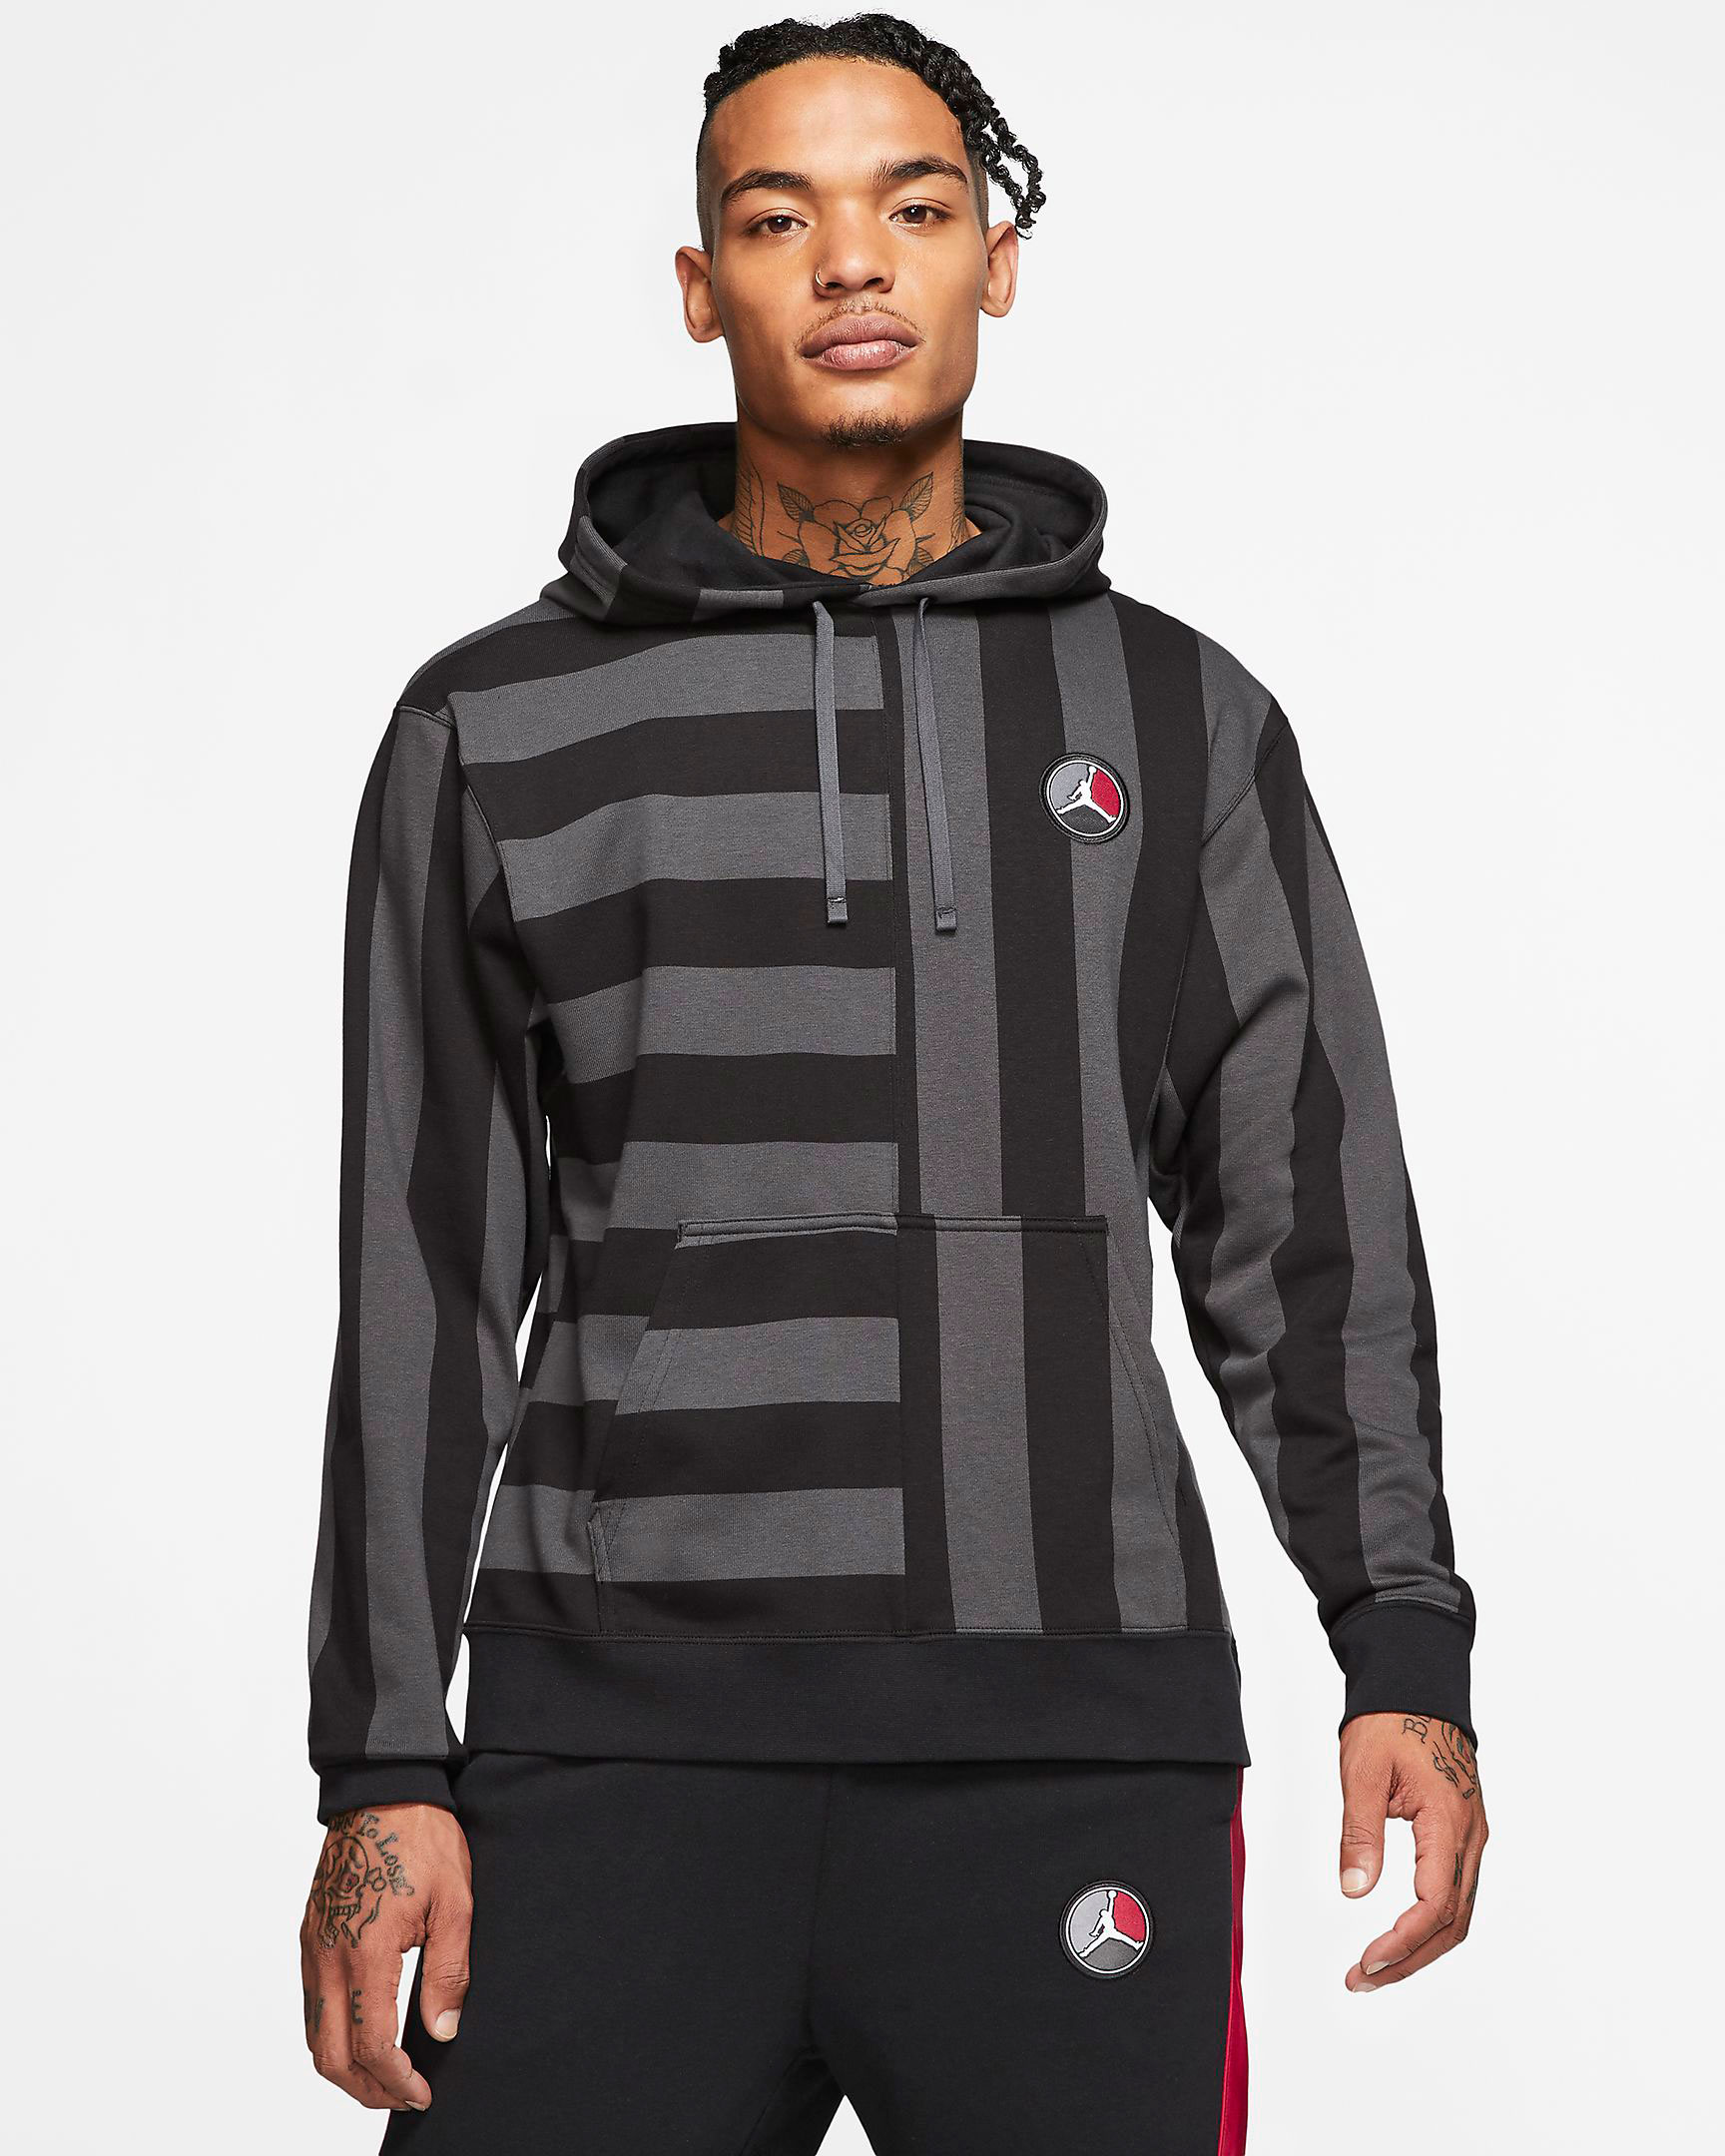 jordan-remastered-hoodie-black-grey-red-1